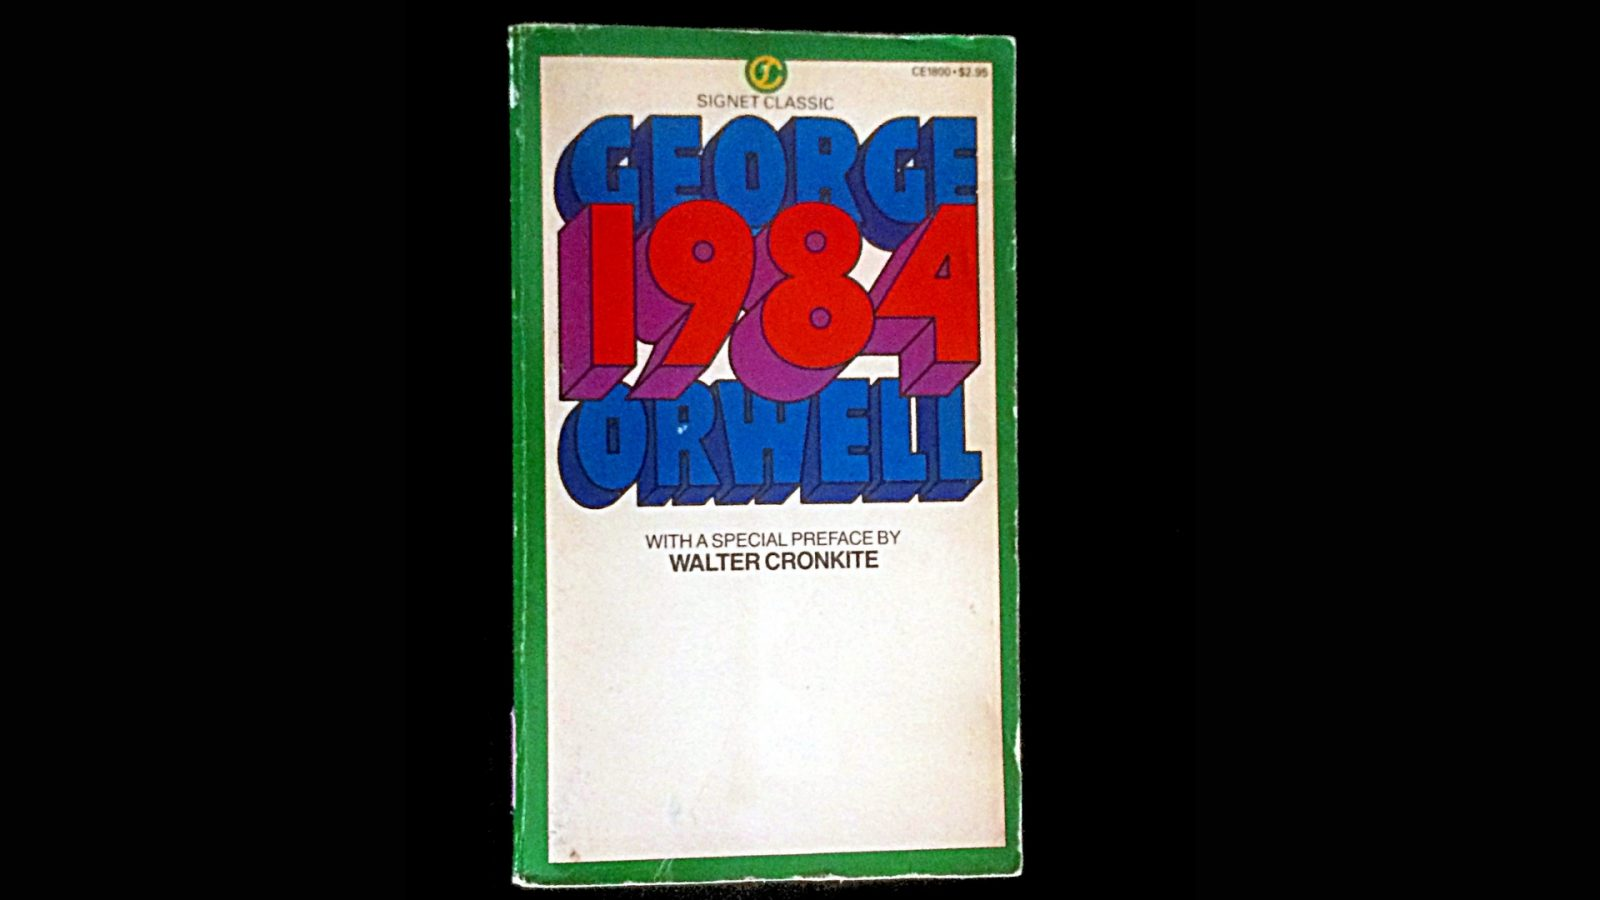 Orwell's book 1984